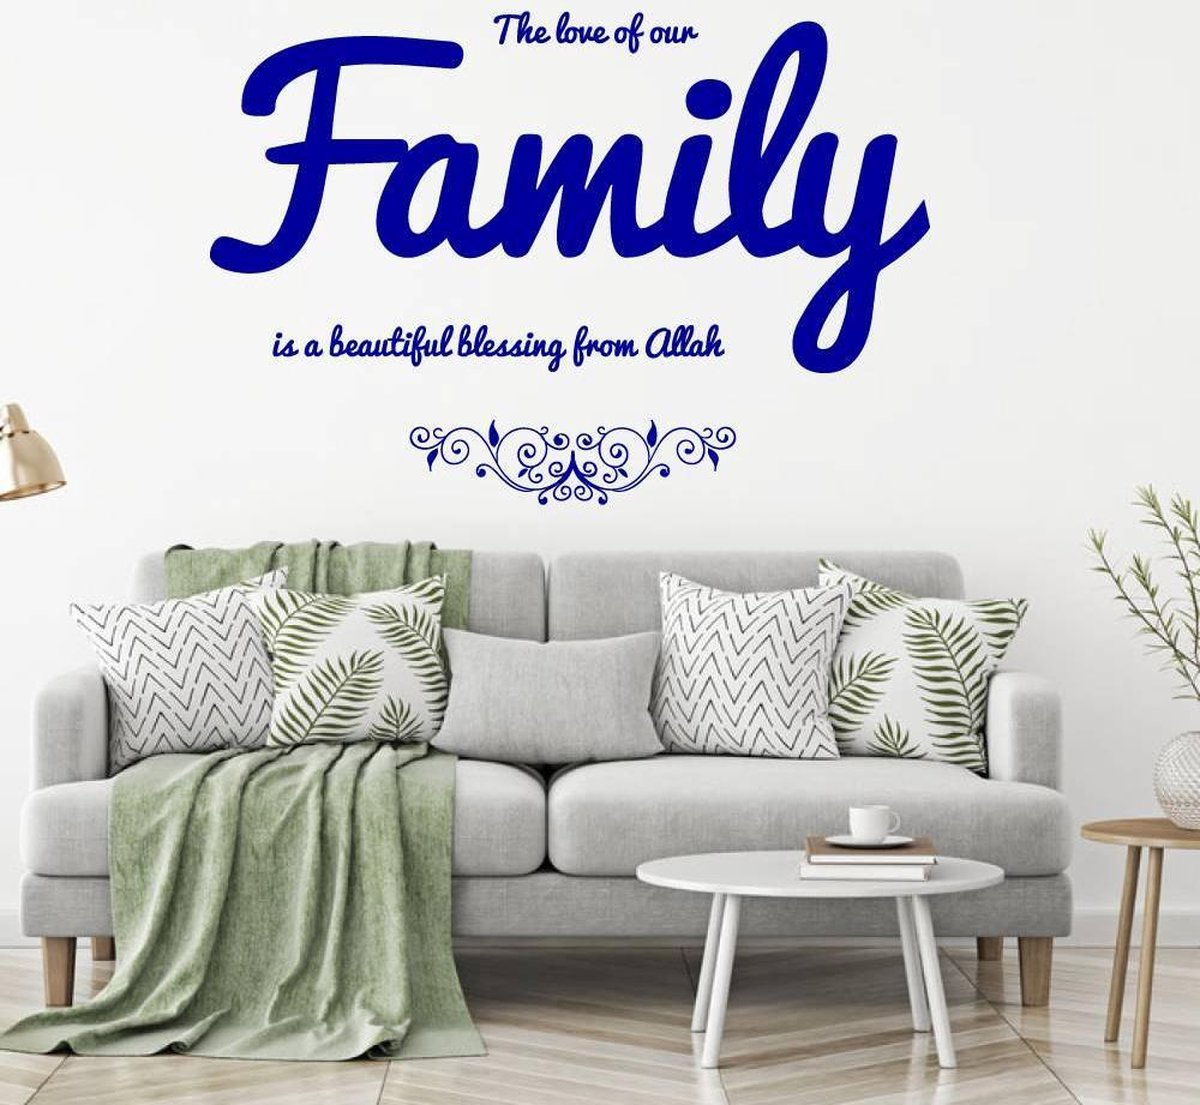 The Love Of Our Family Is A Beautiful Blessing From Allah -  Donkerblauw -  80 x 55 cm  -  woonkamer  arabisch islamitisch teksten   - Muursticker4Sale